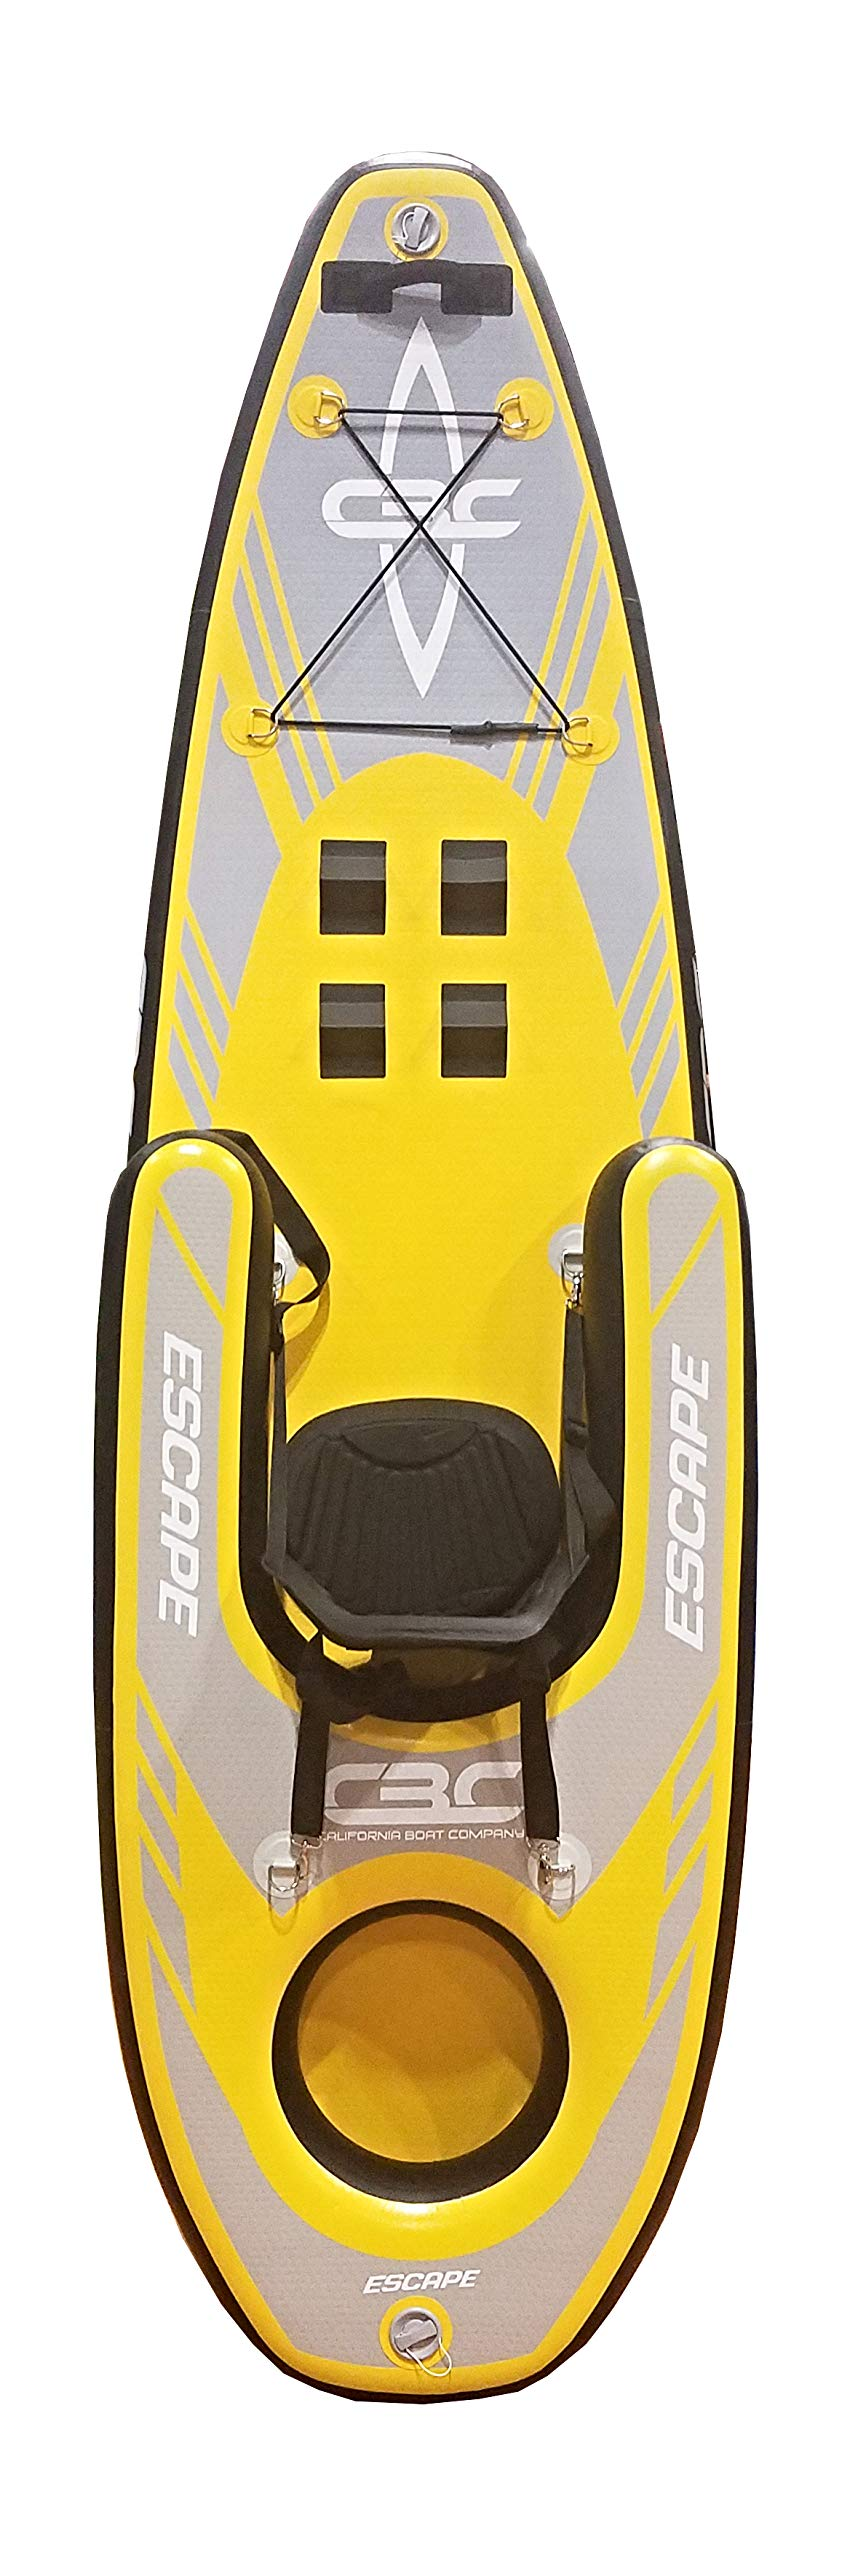 California Board Company California Boat Company Escape I-Kayak Inflatable Kayak Package One Size, Yellow by California Board Company